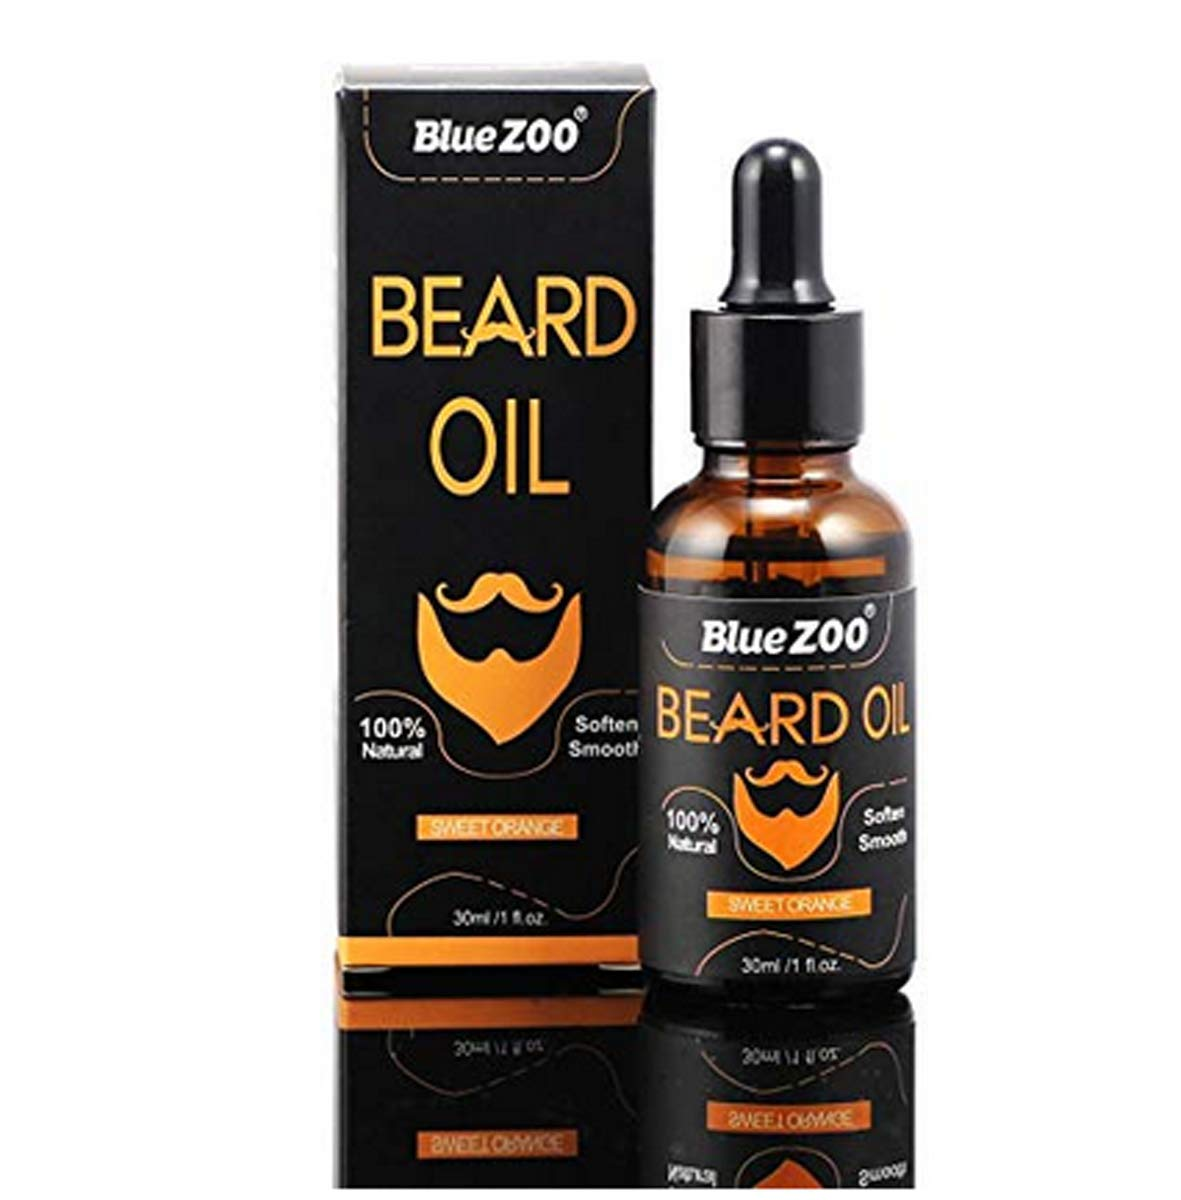 Organic Beard Oil Growth for Groomed Beards for Men's Mustaches For Beard and Mustache Styling, Shaping, Grooming & Growth (30 ML, Fragrance Free) Argan oil